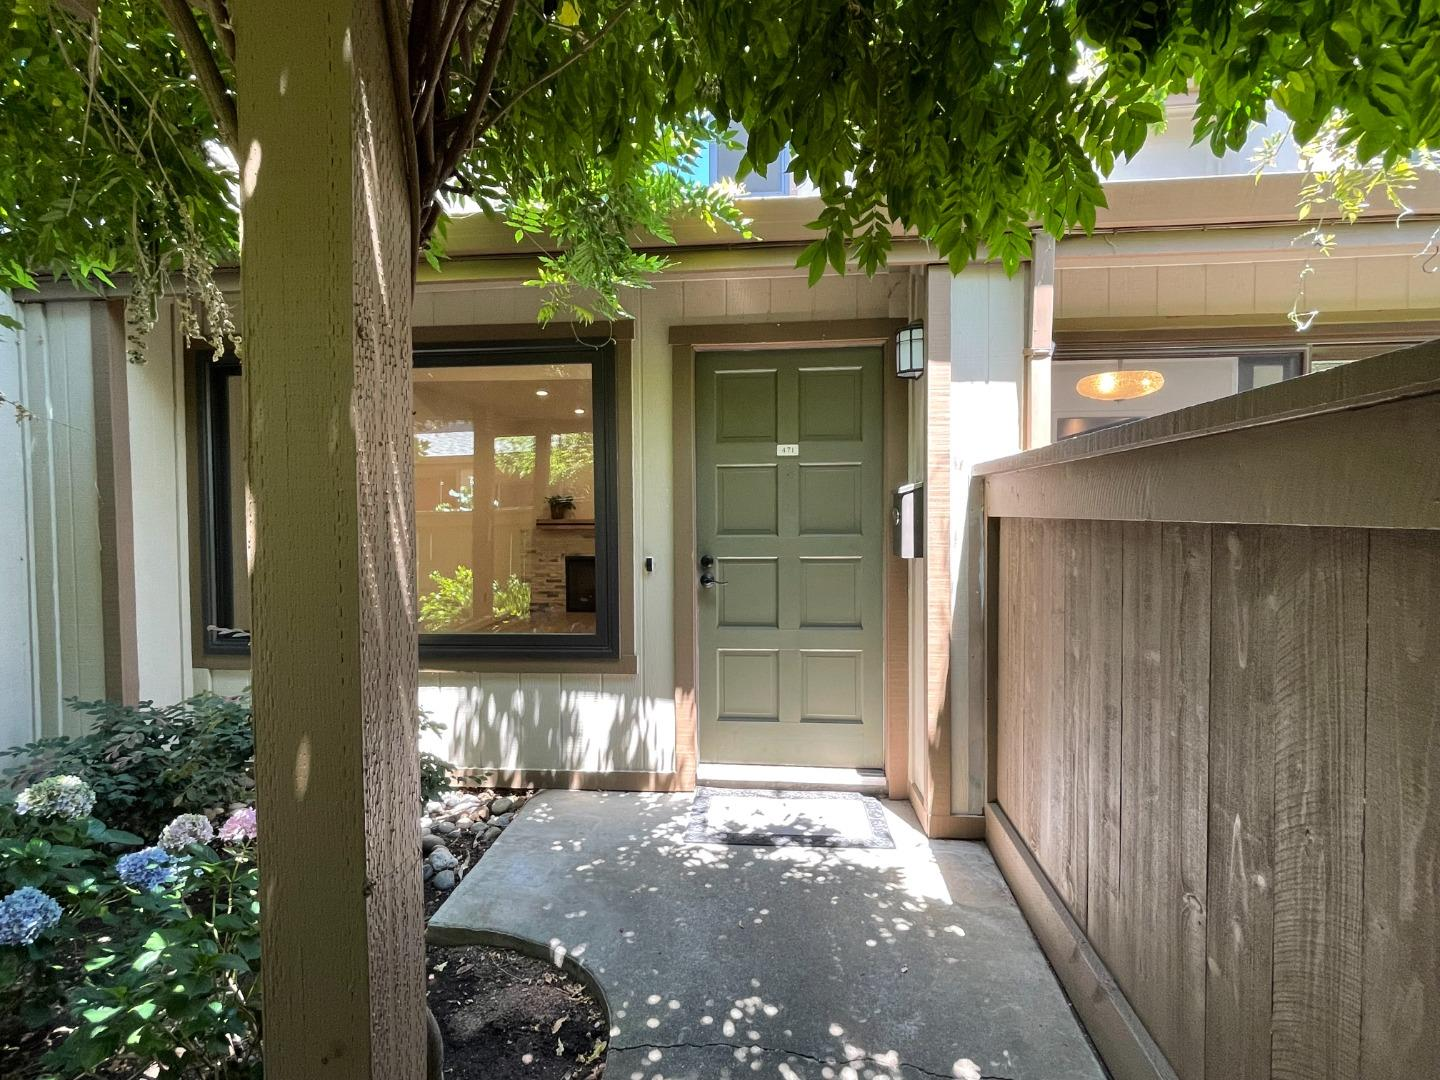 49 Showers Dr. L471 Mountain View CA 94040